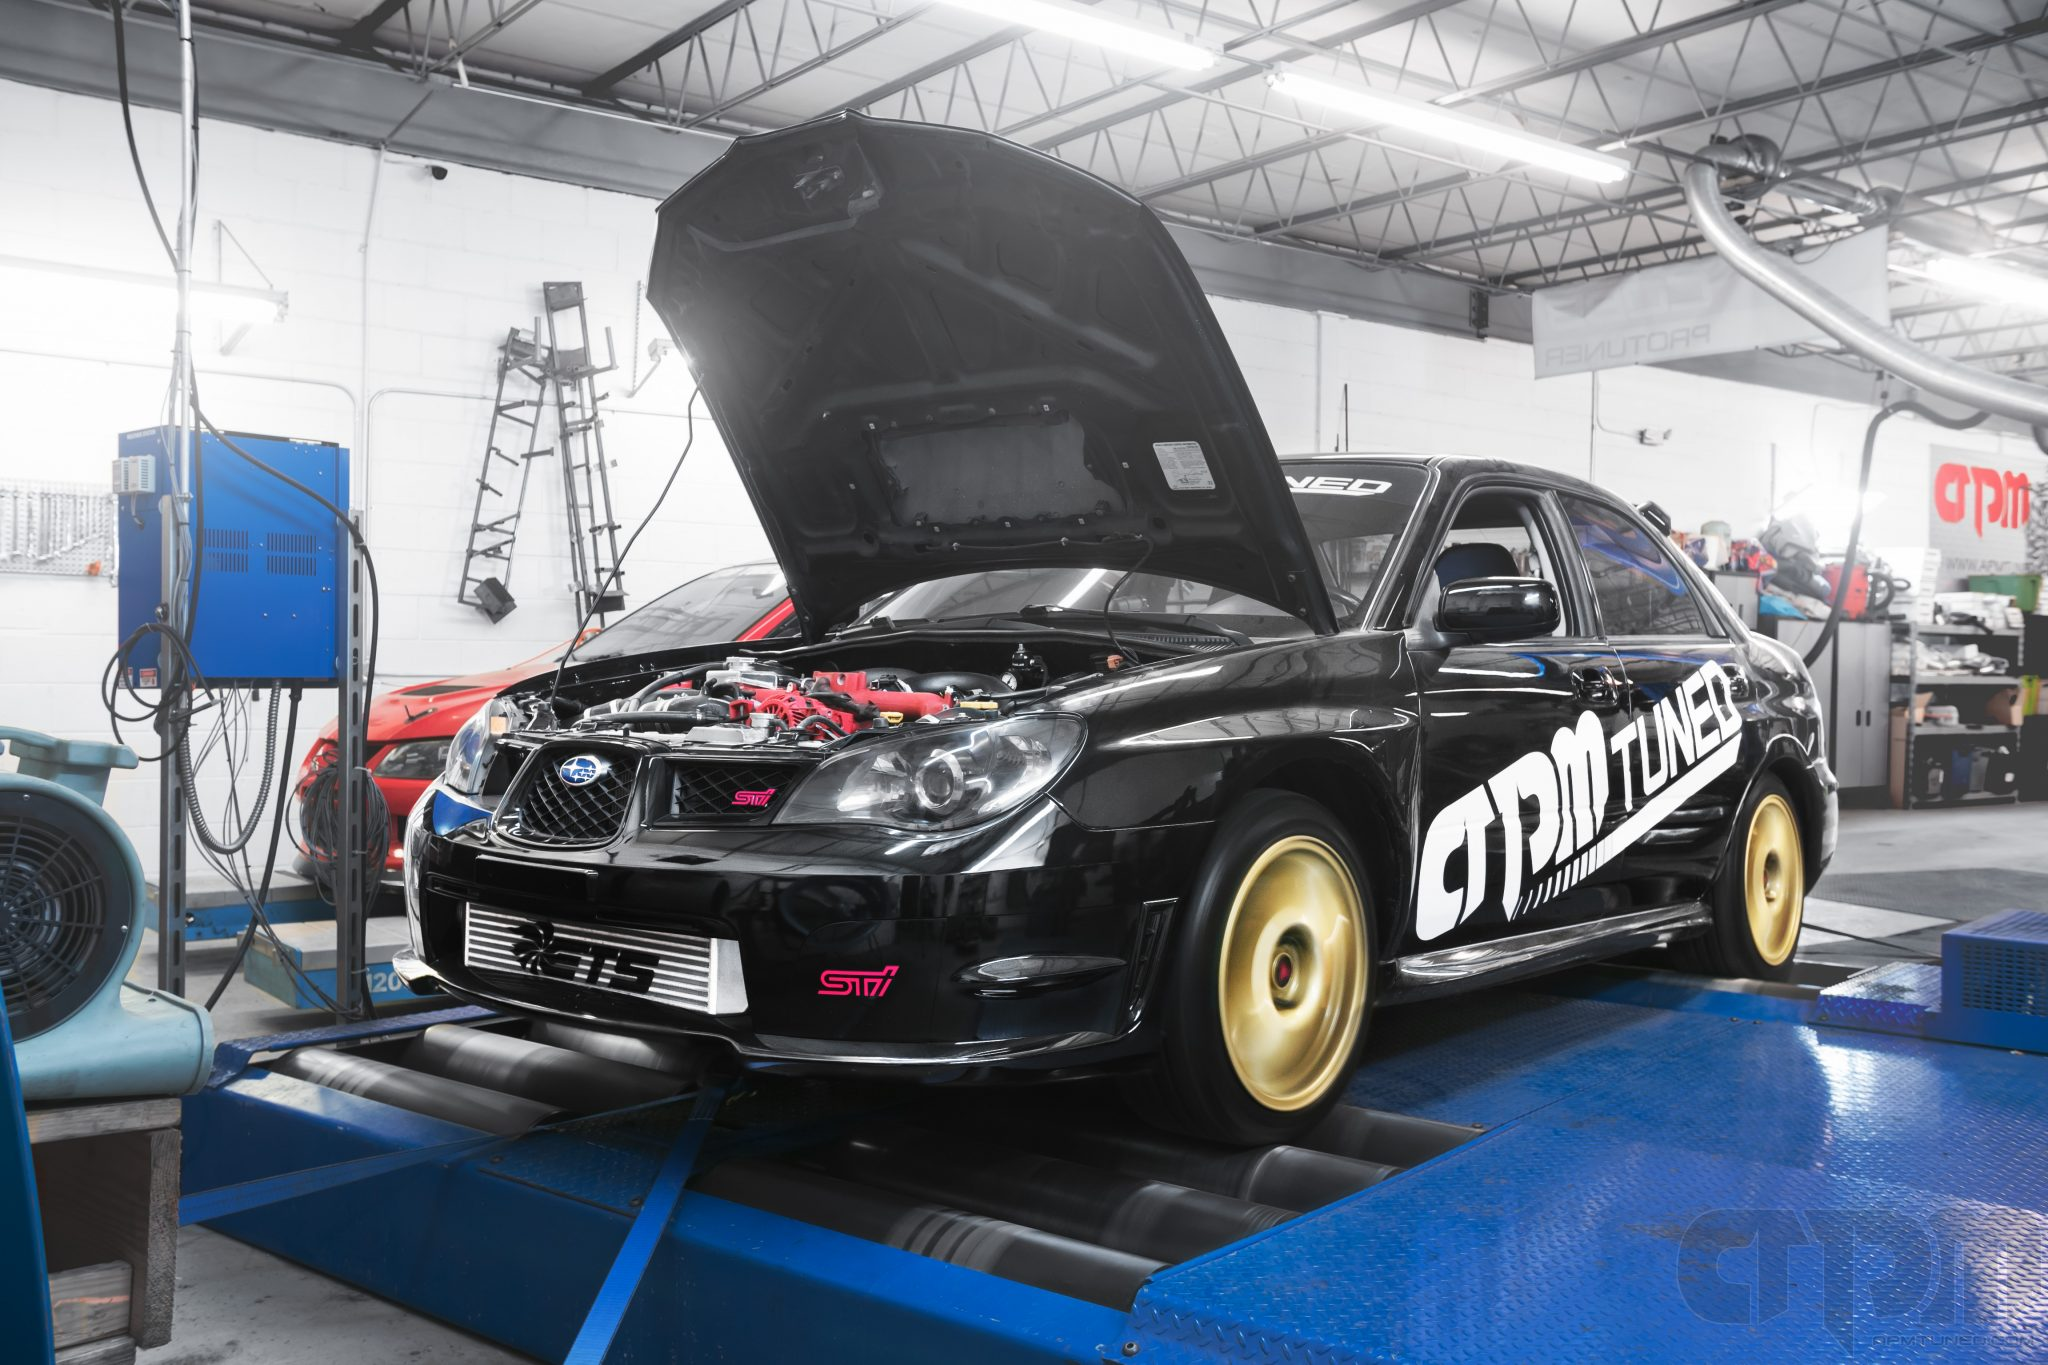 APMTuned's black Subaru STi hawkeye shop race car getting tuned on our Mustang Dynamometer AWD 4WD Dyno